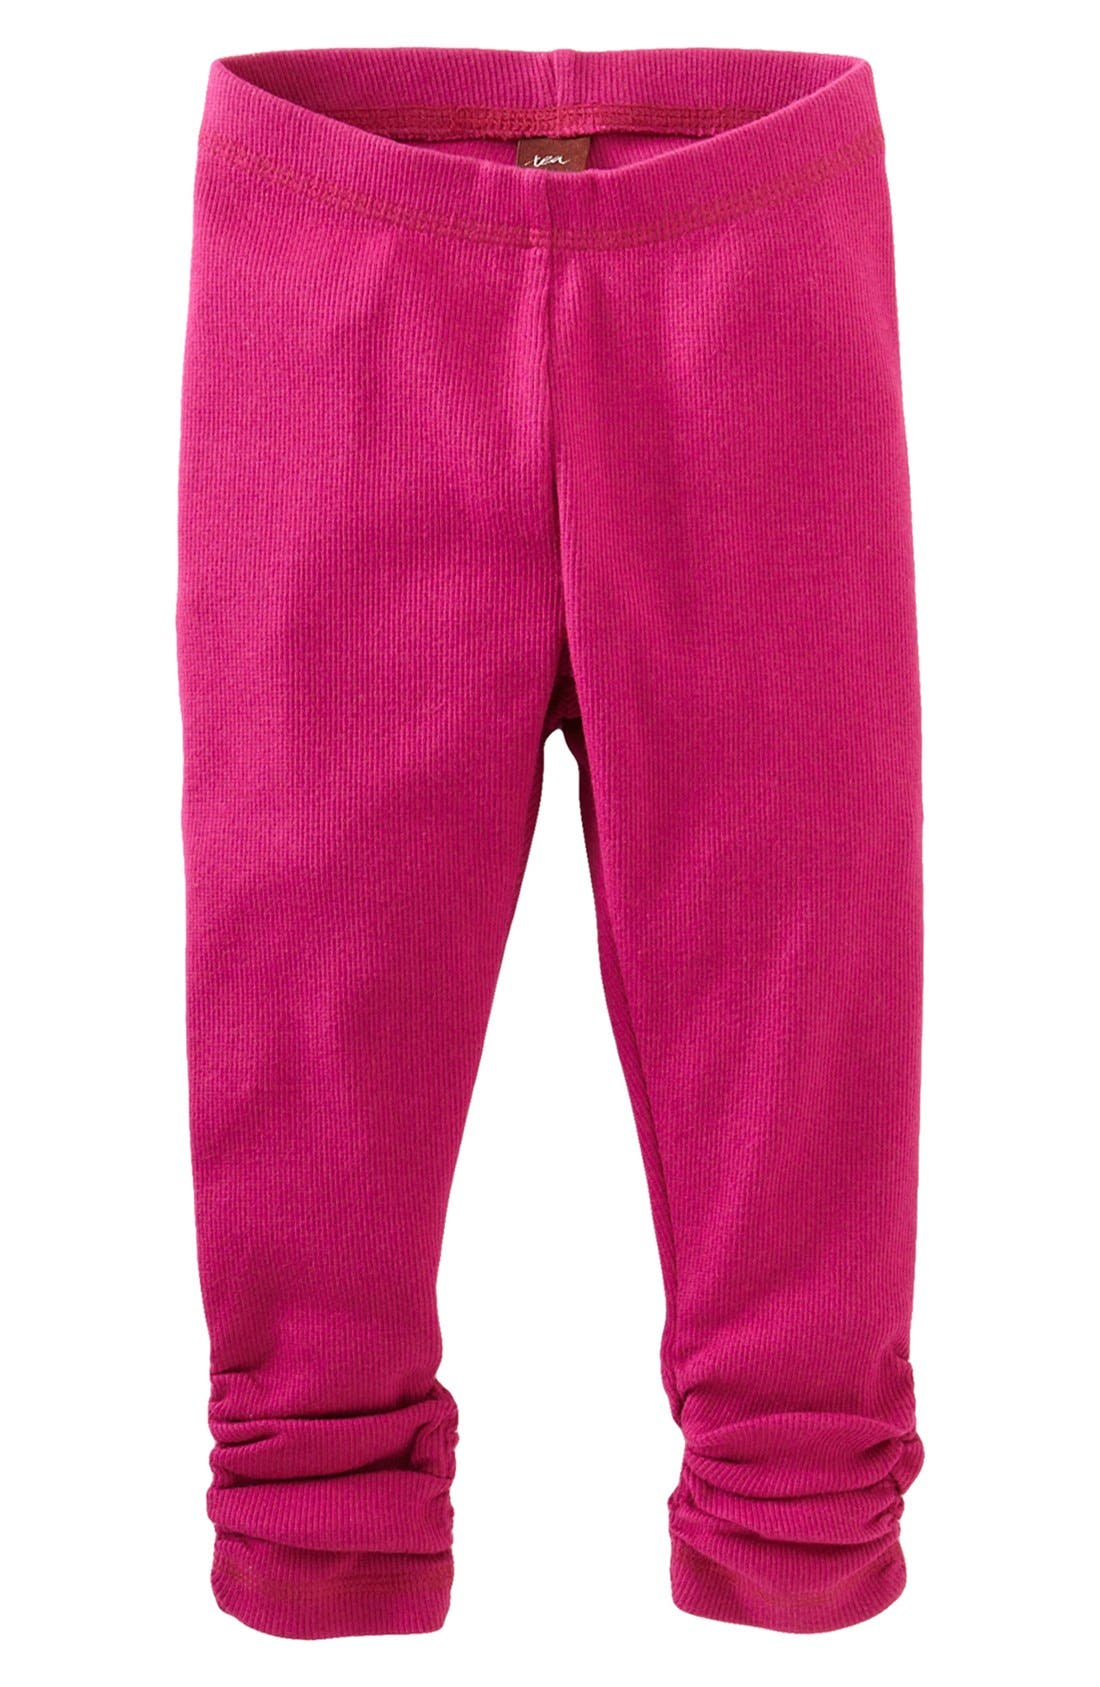 Alternate Image 1 Selected - Tea Collection Leggings (Toddler Girls)